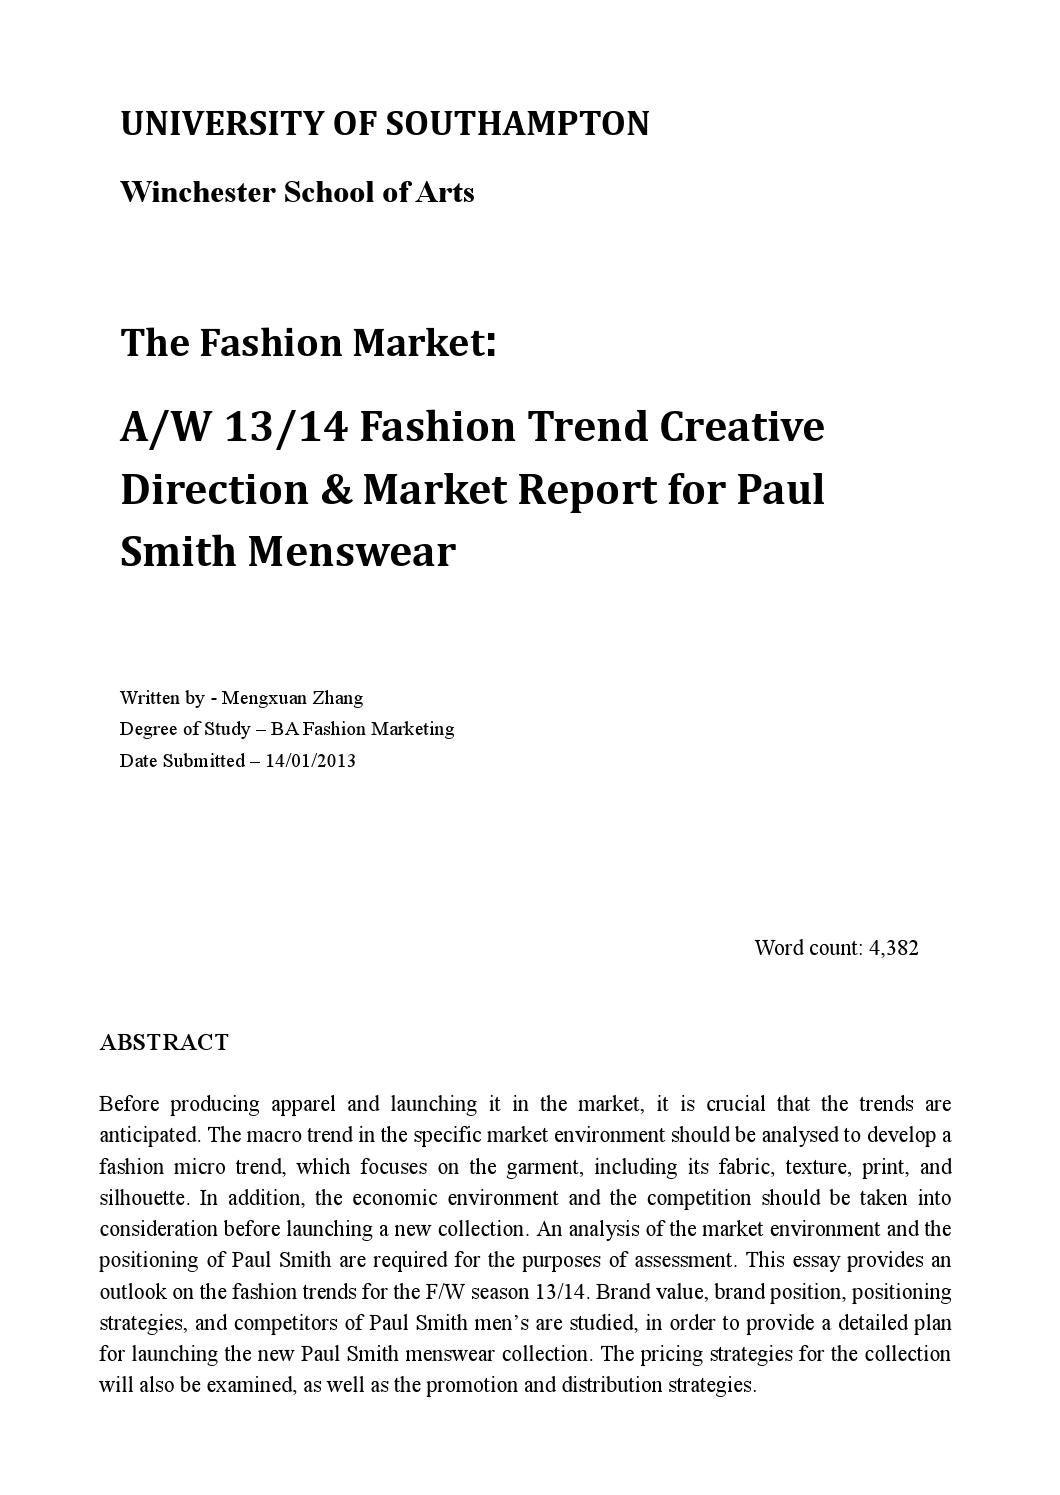 the fashion market cos by louisa kimins  a w 13 14 fashion trend creative direction market report for paul smith